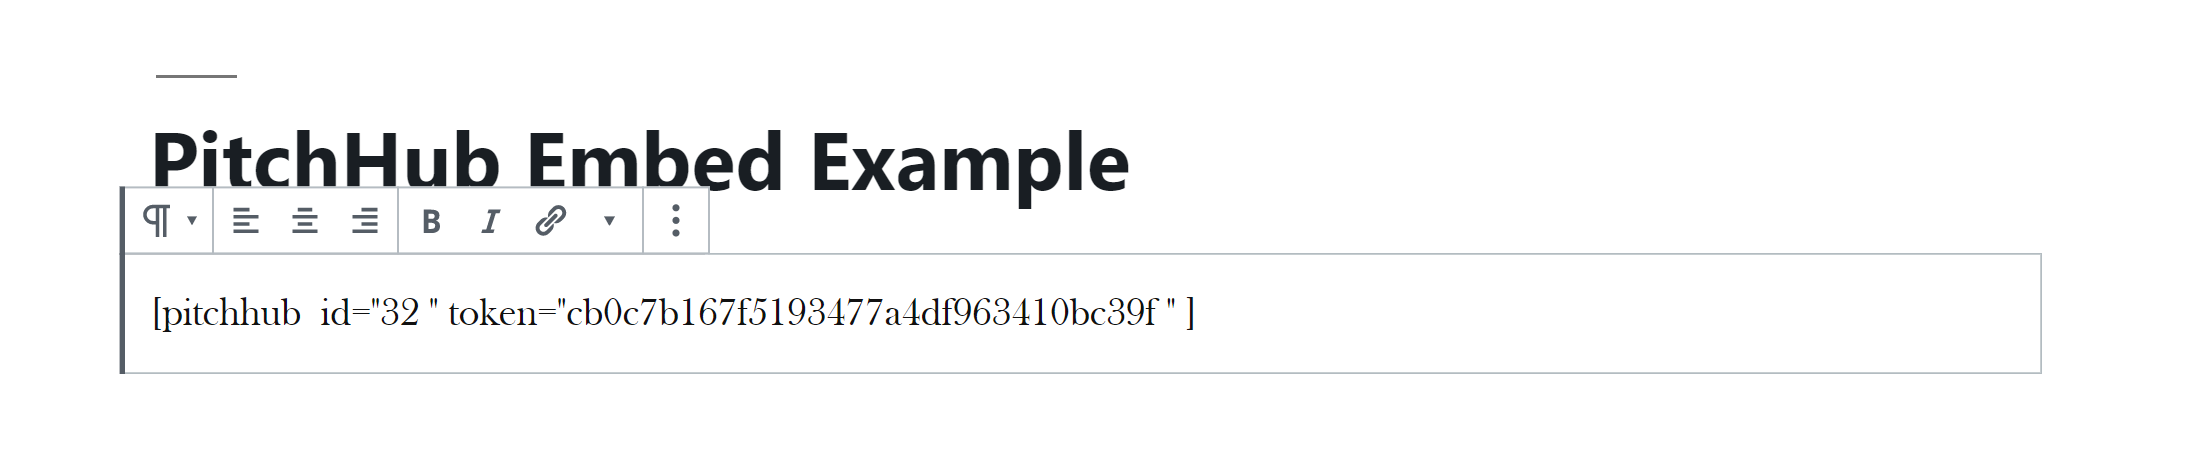 Example of entering PitchHub embed shortcode